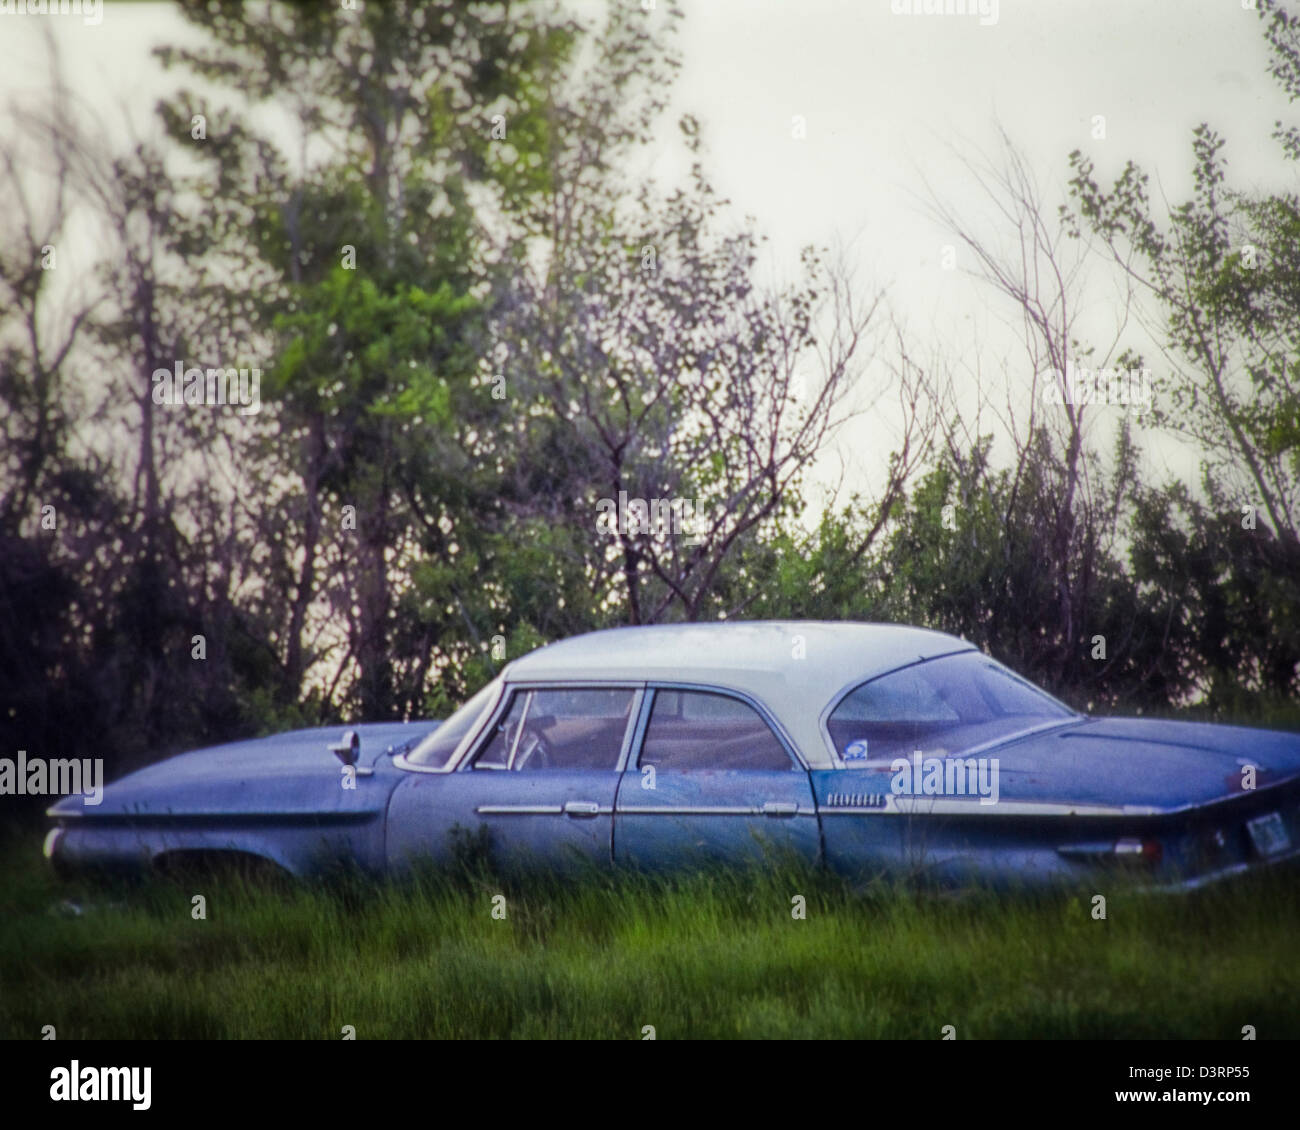 Old Blue Car parked in the tall grass, awaiting restoration - Stock Image